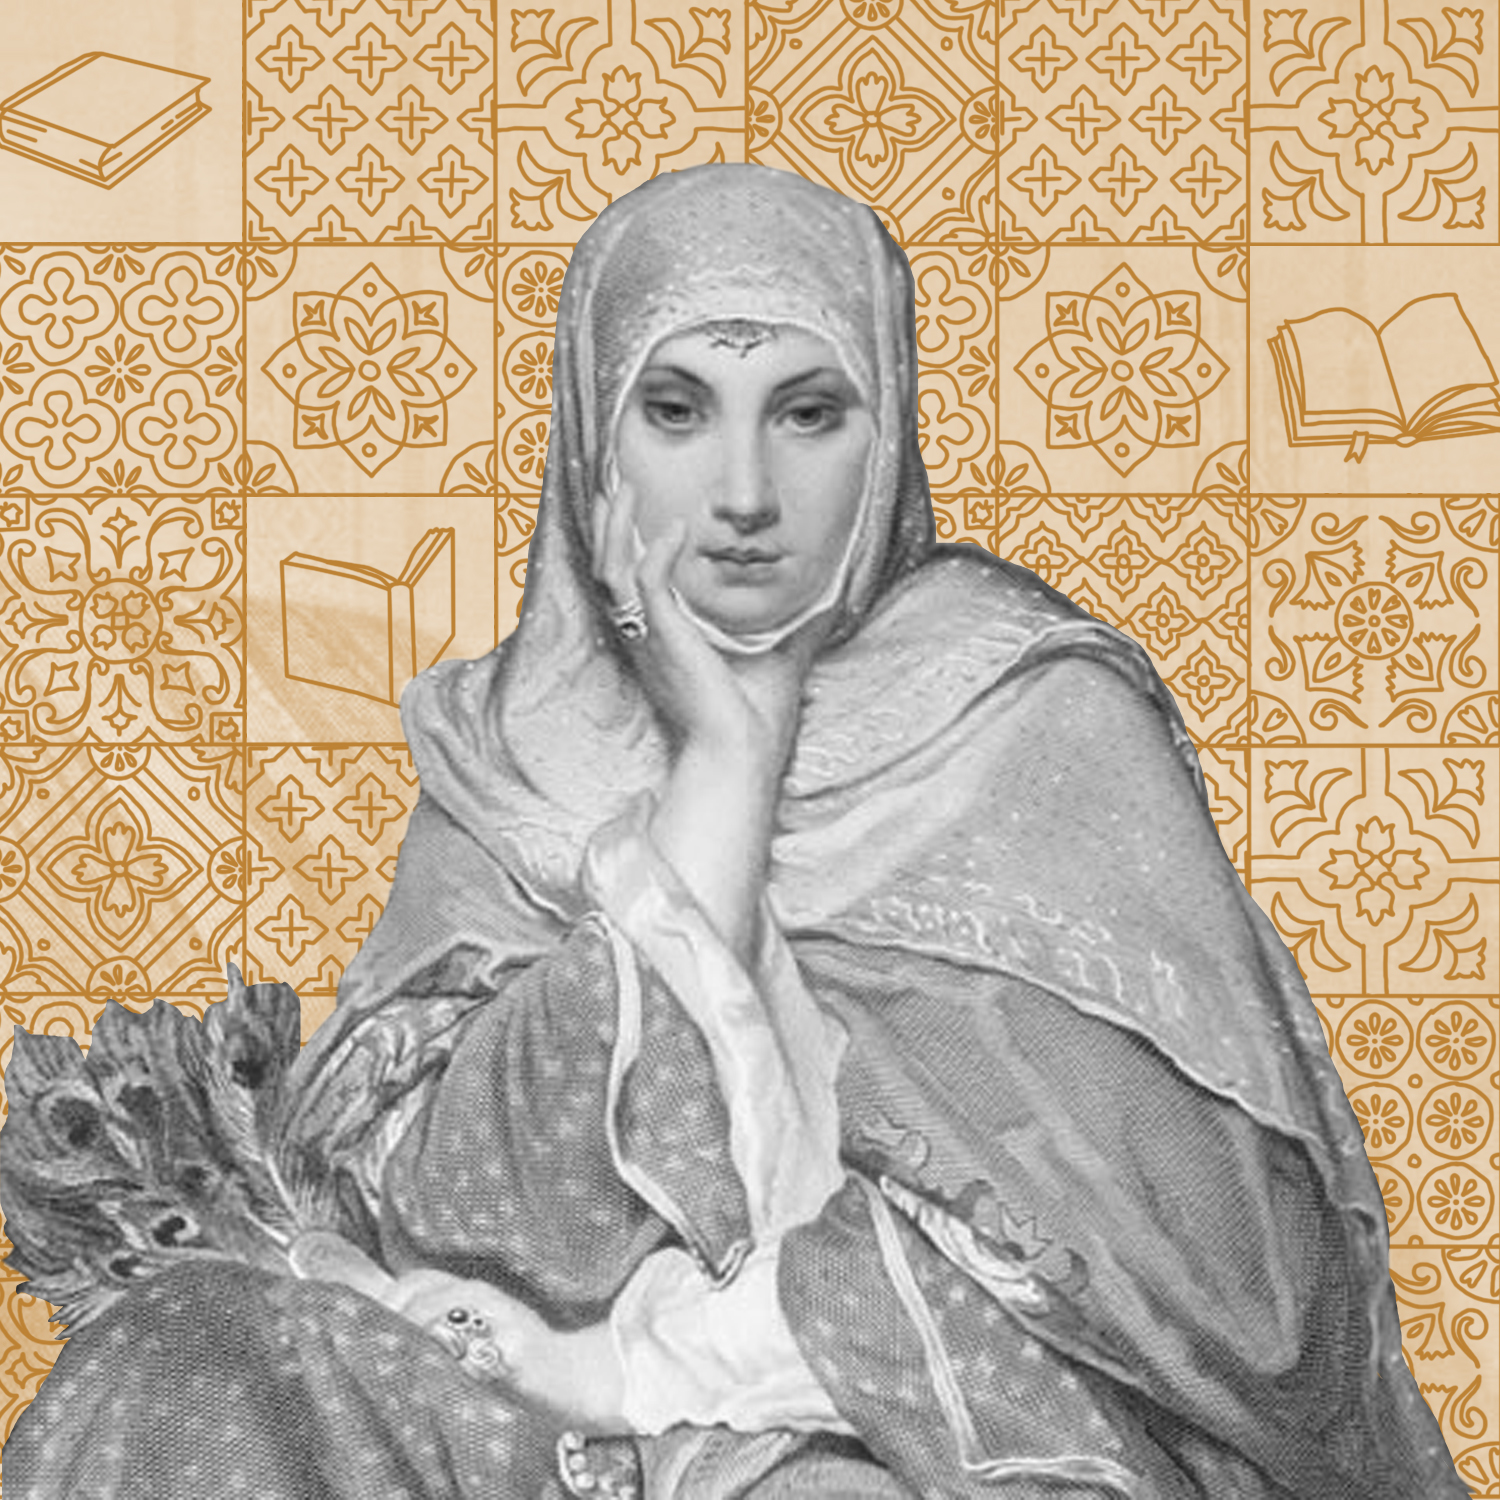 Fatima bint Muhammad Al-Fihriya Al-Qurashiya    Fatima Al-Fihriya was an Arab Muslim woman who is credited for founding the oldest existing, continually operating and first degree-awarding educational institution (as well as one of the world's oldest libraries) in the world, The University of Al Quaraouiyine in Fes, Morocco in 859 CE.